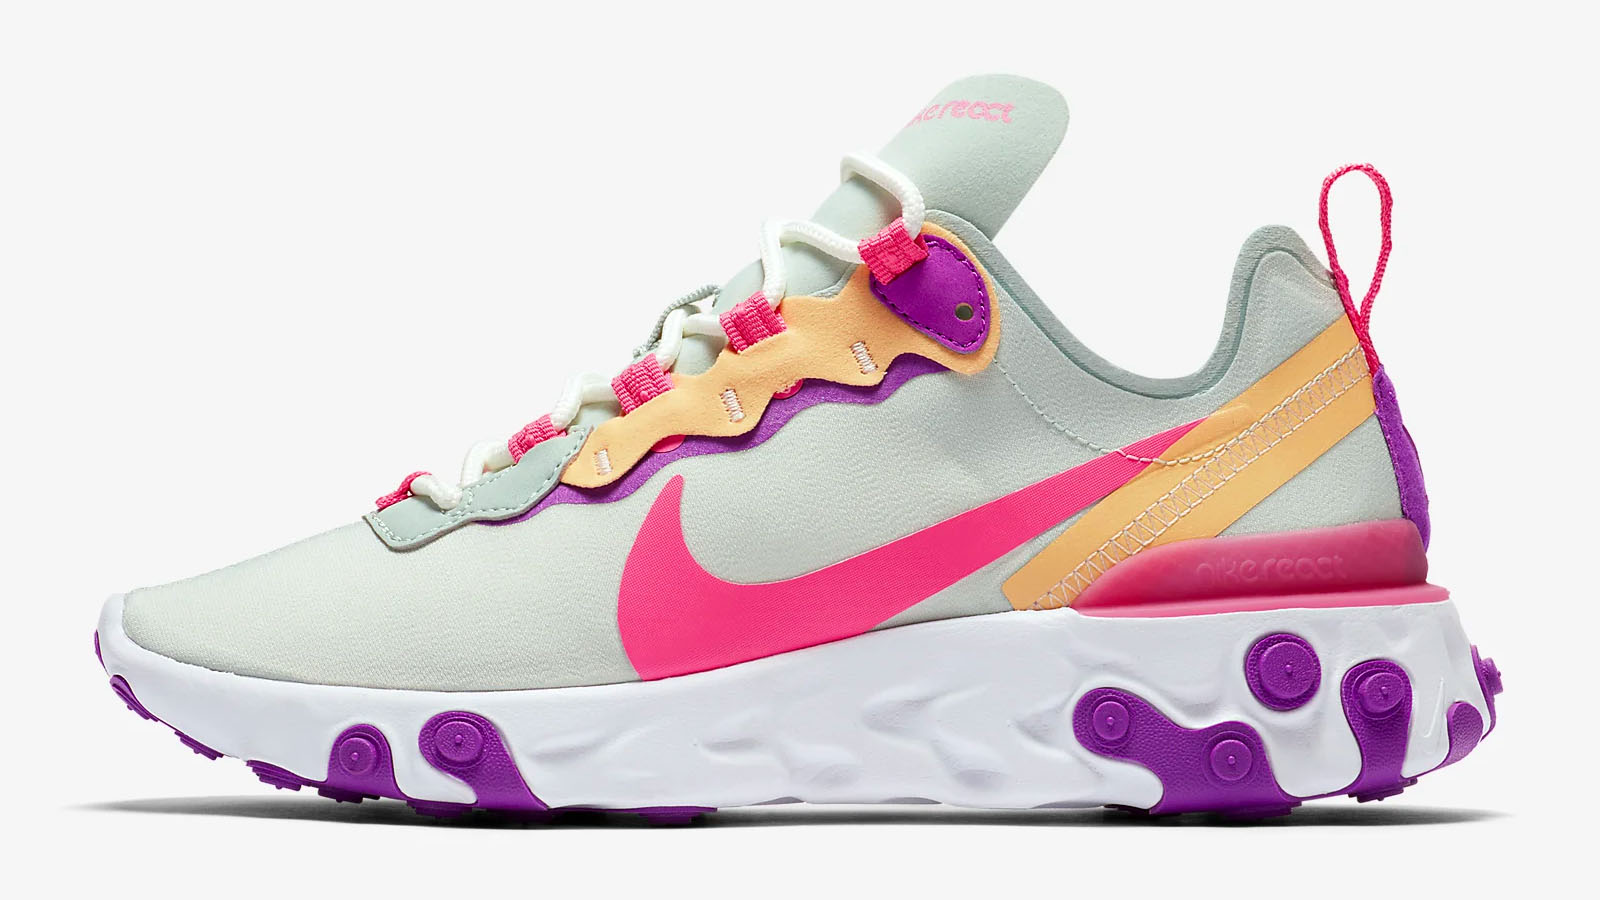 nike react element 55 pink purple